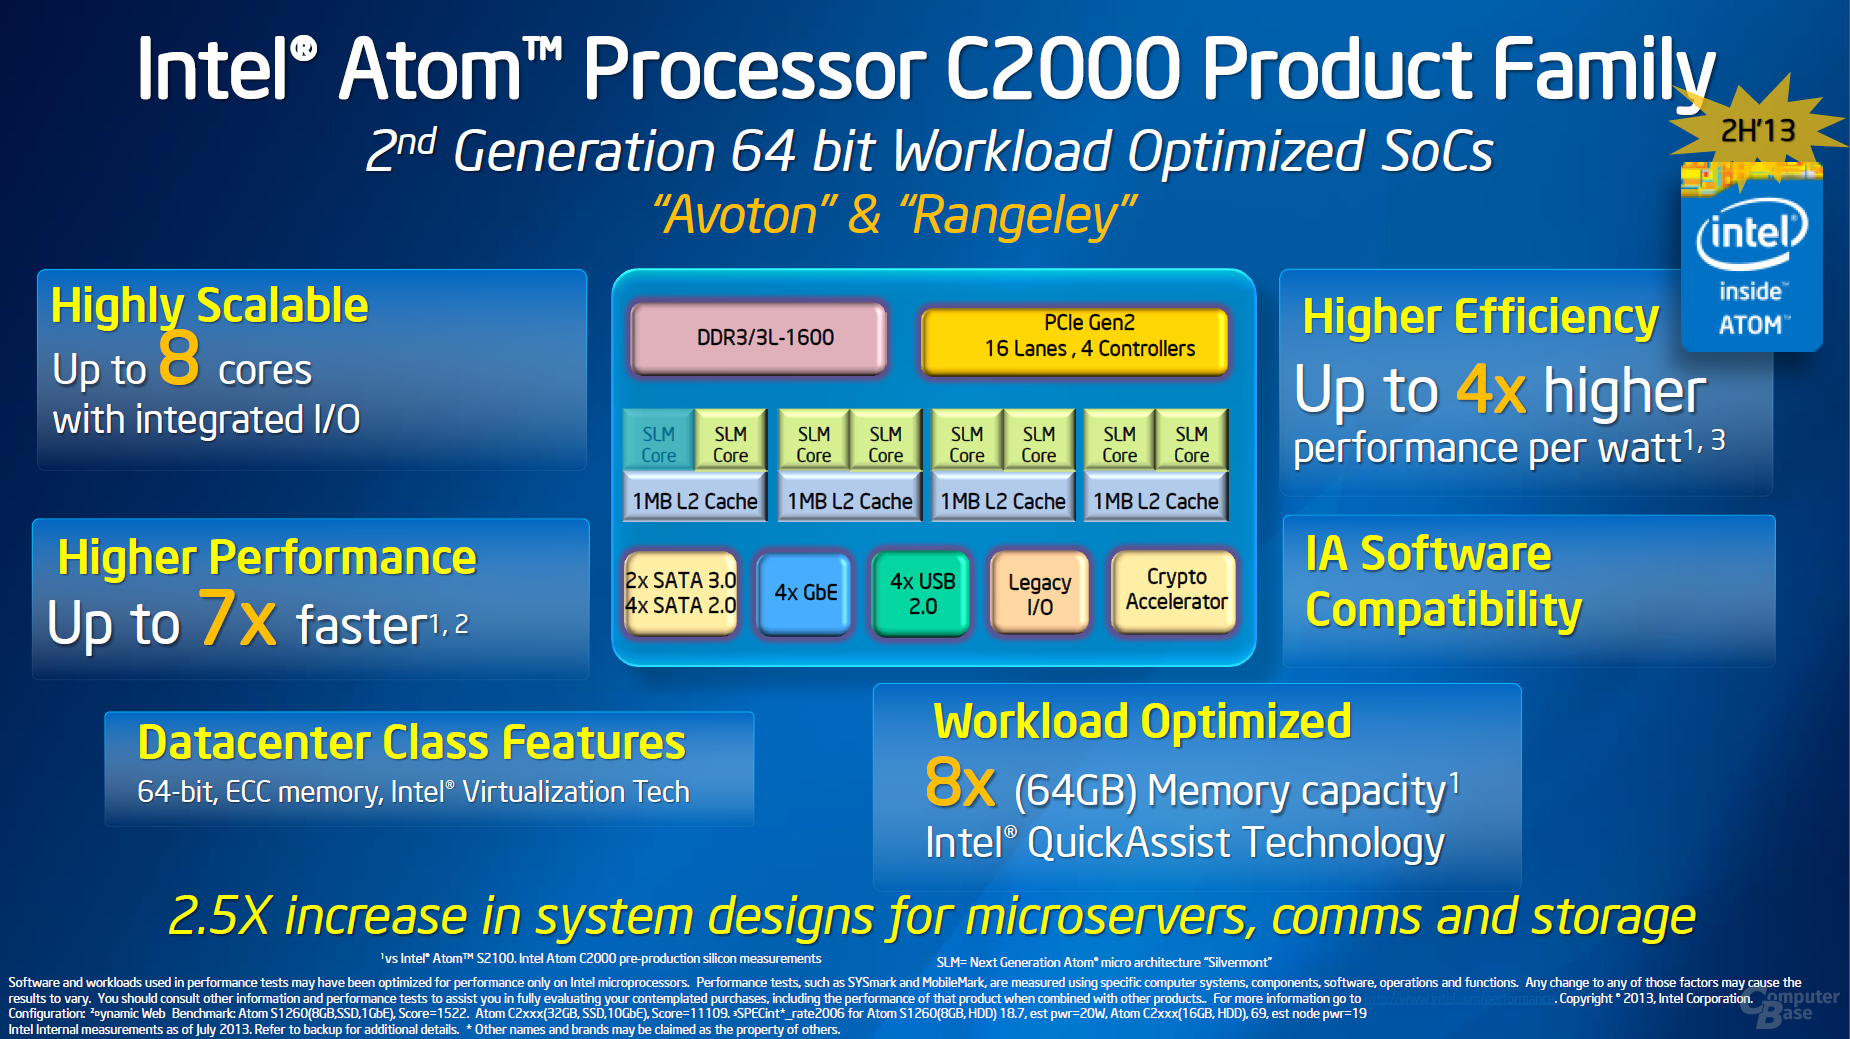 Intel Atom C2000 – Avoton & Rangeley